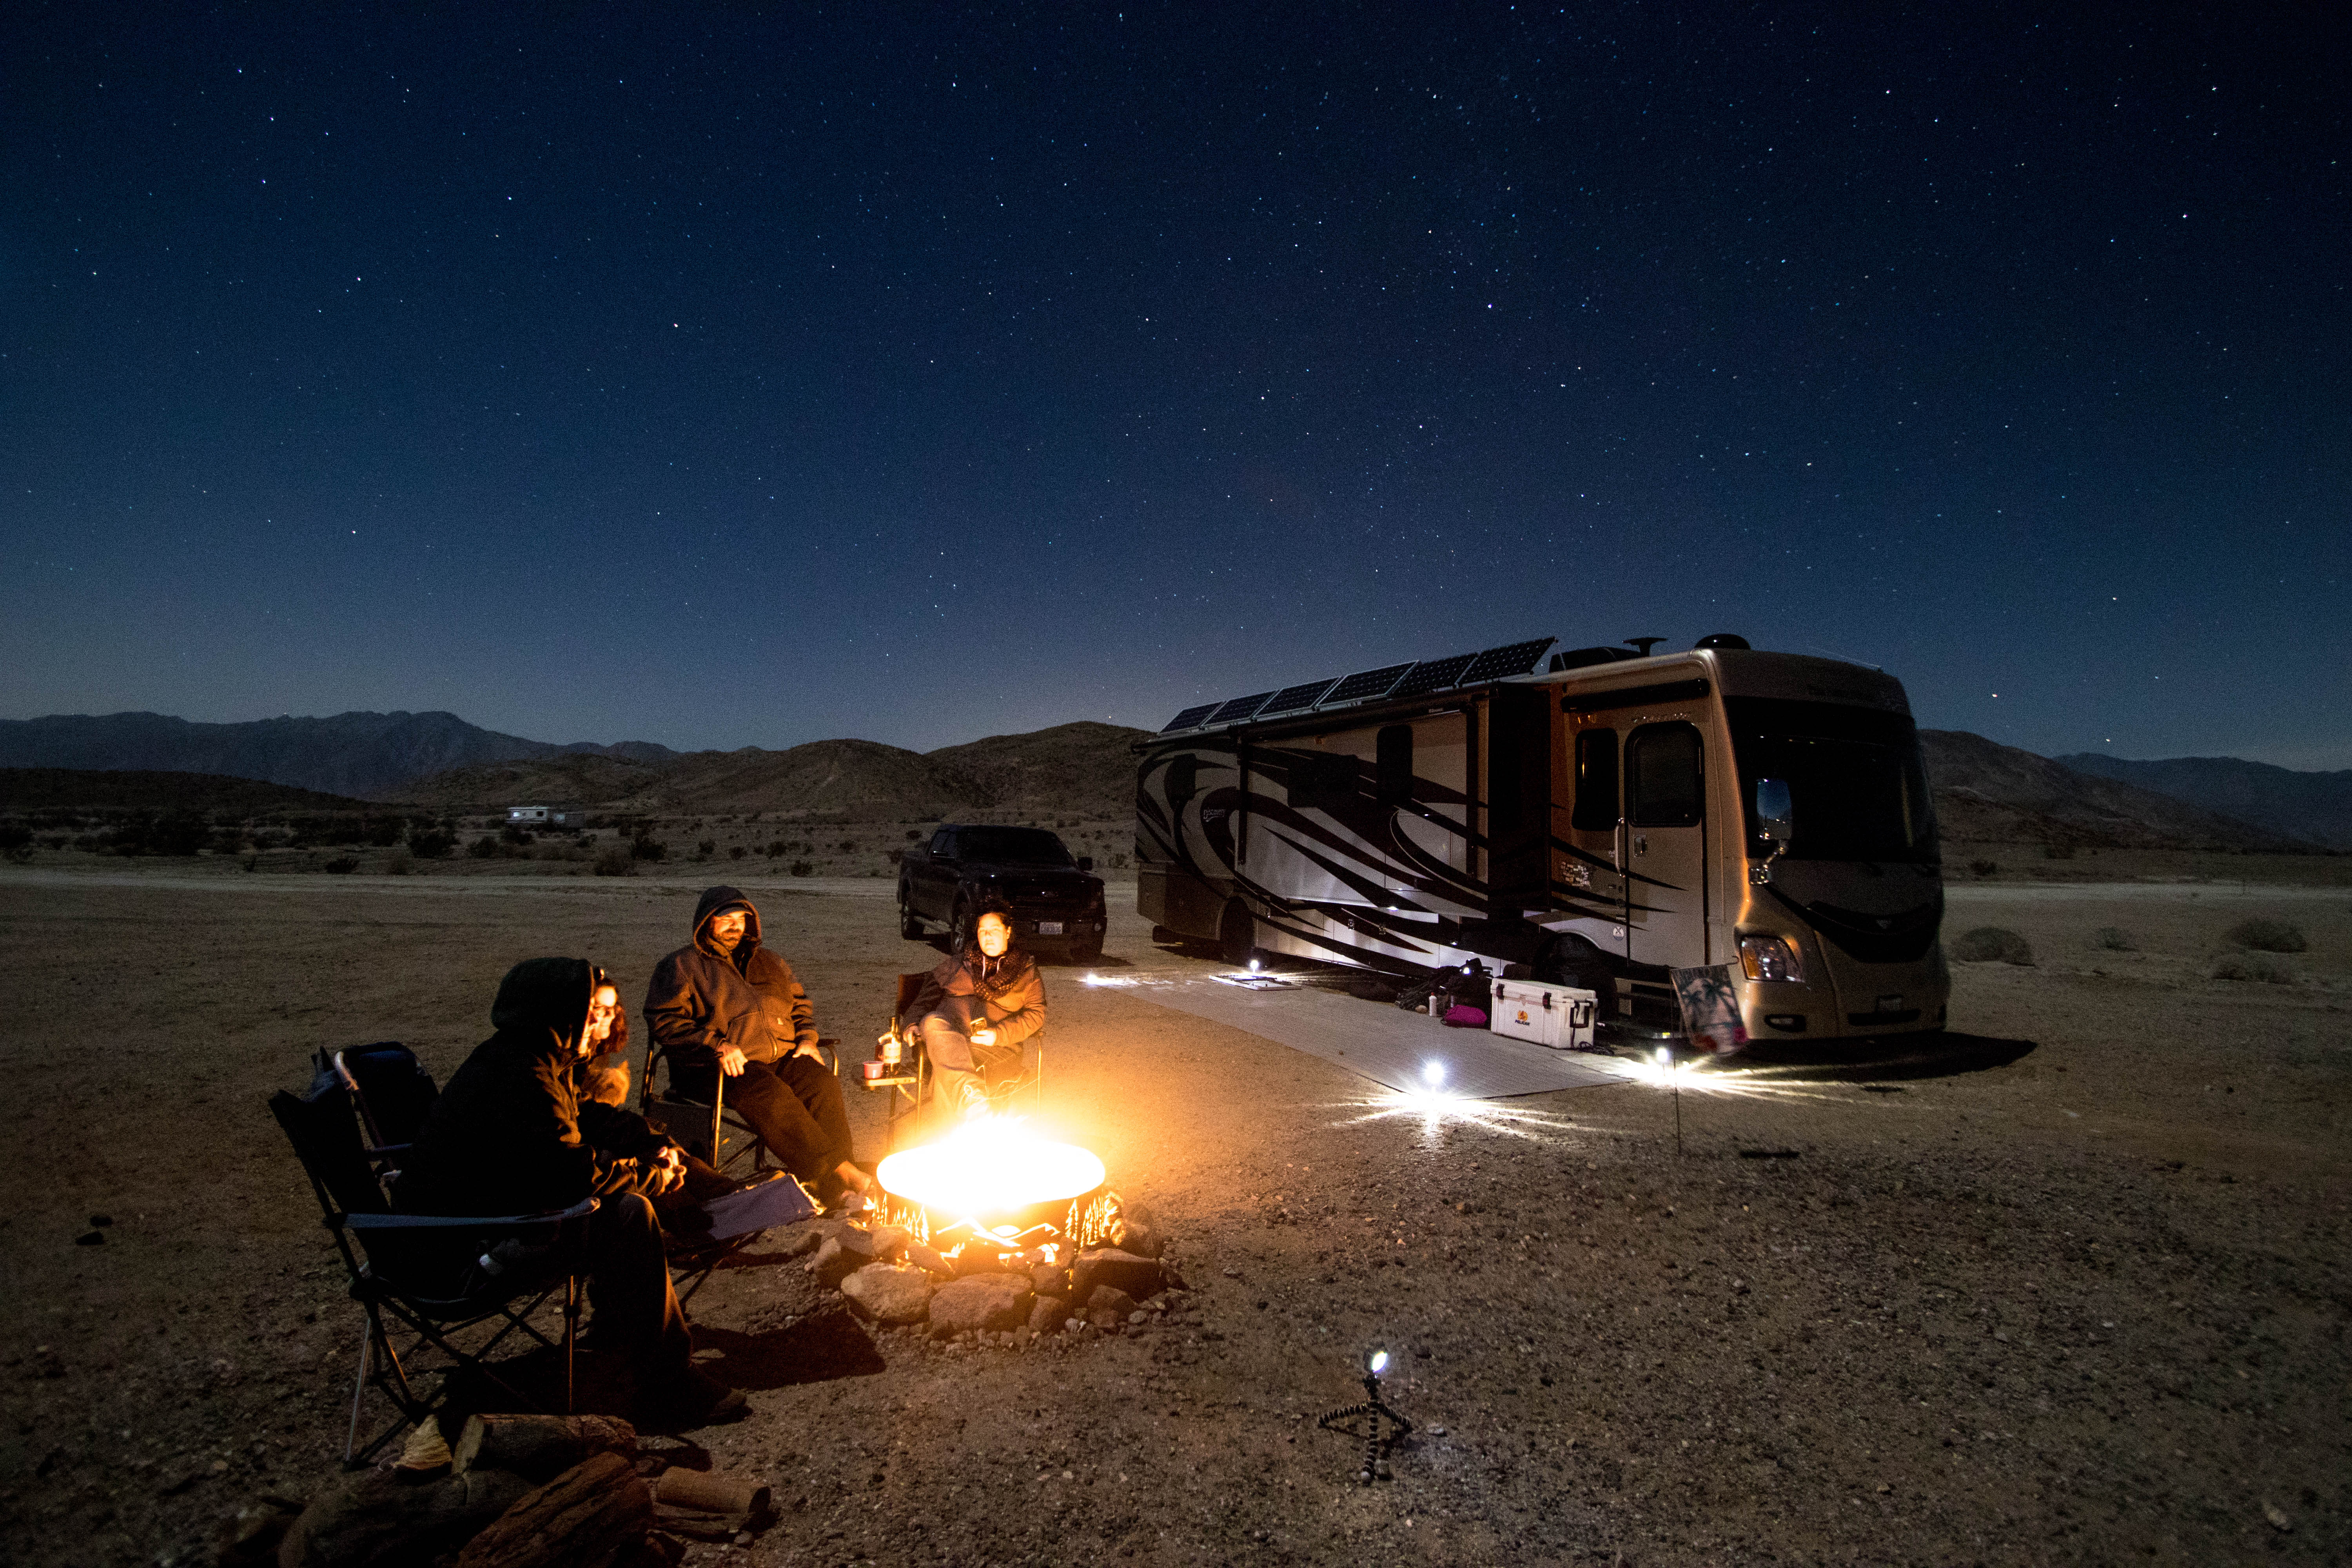 W1 - Camping with friends makes RVing that much better.